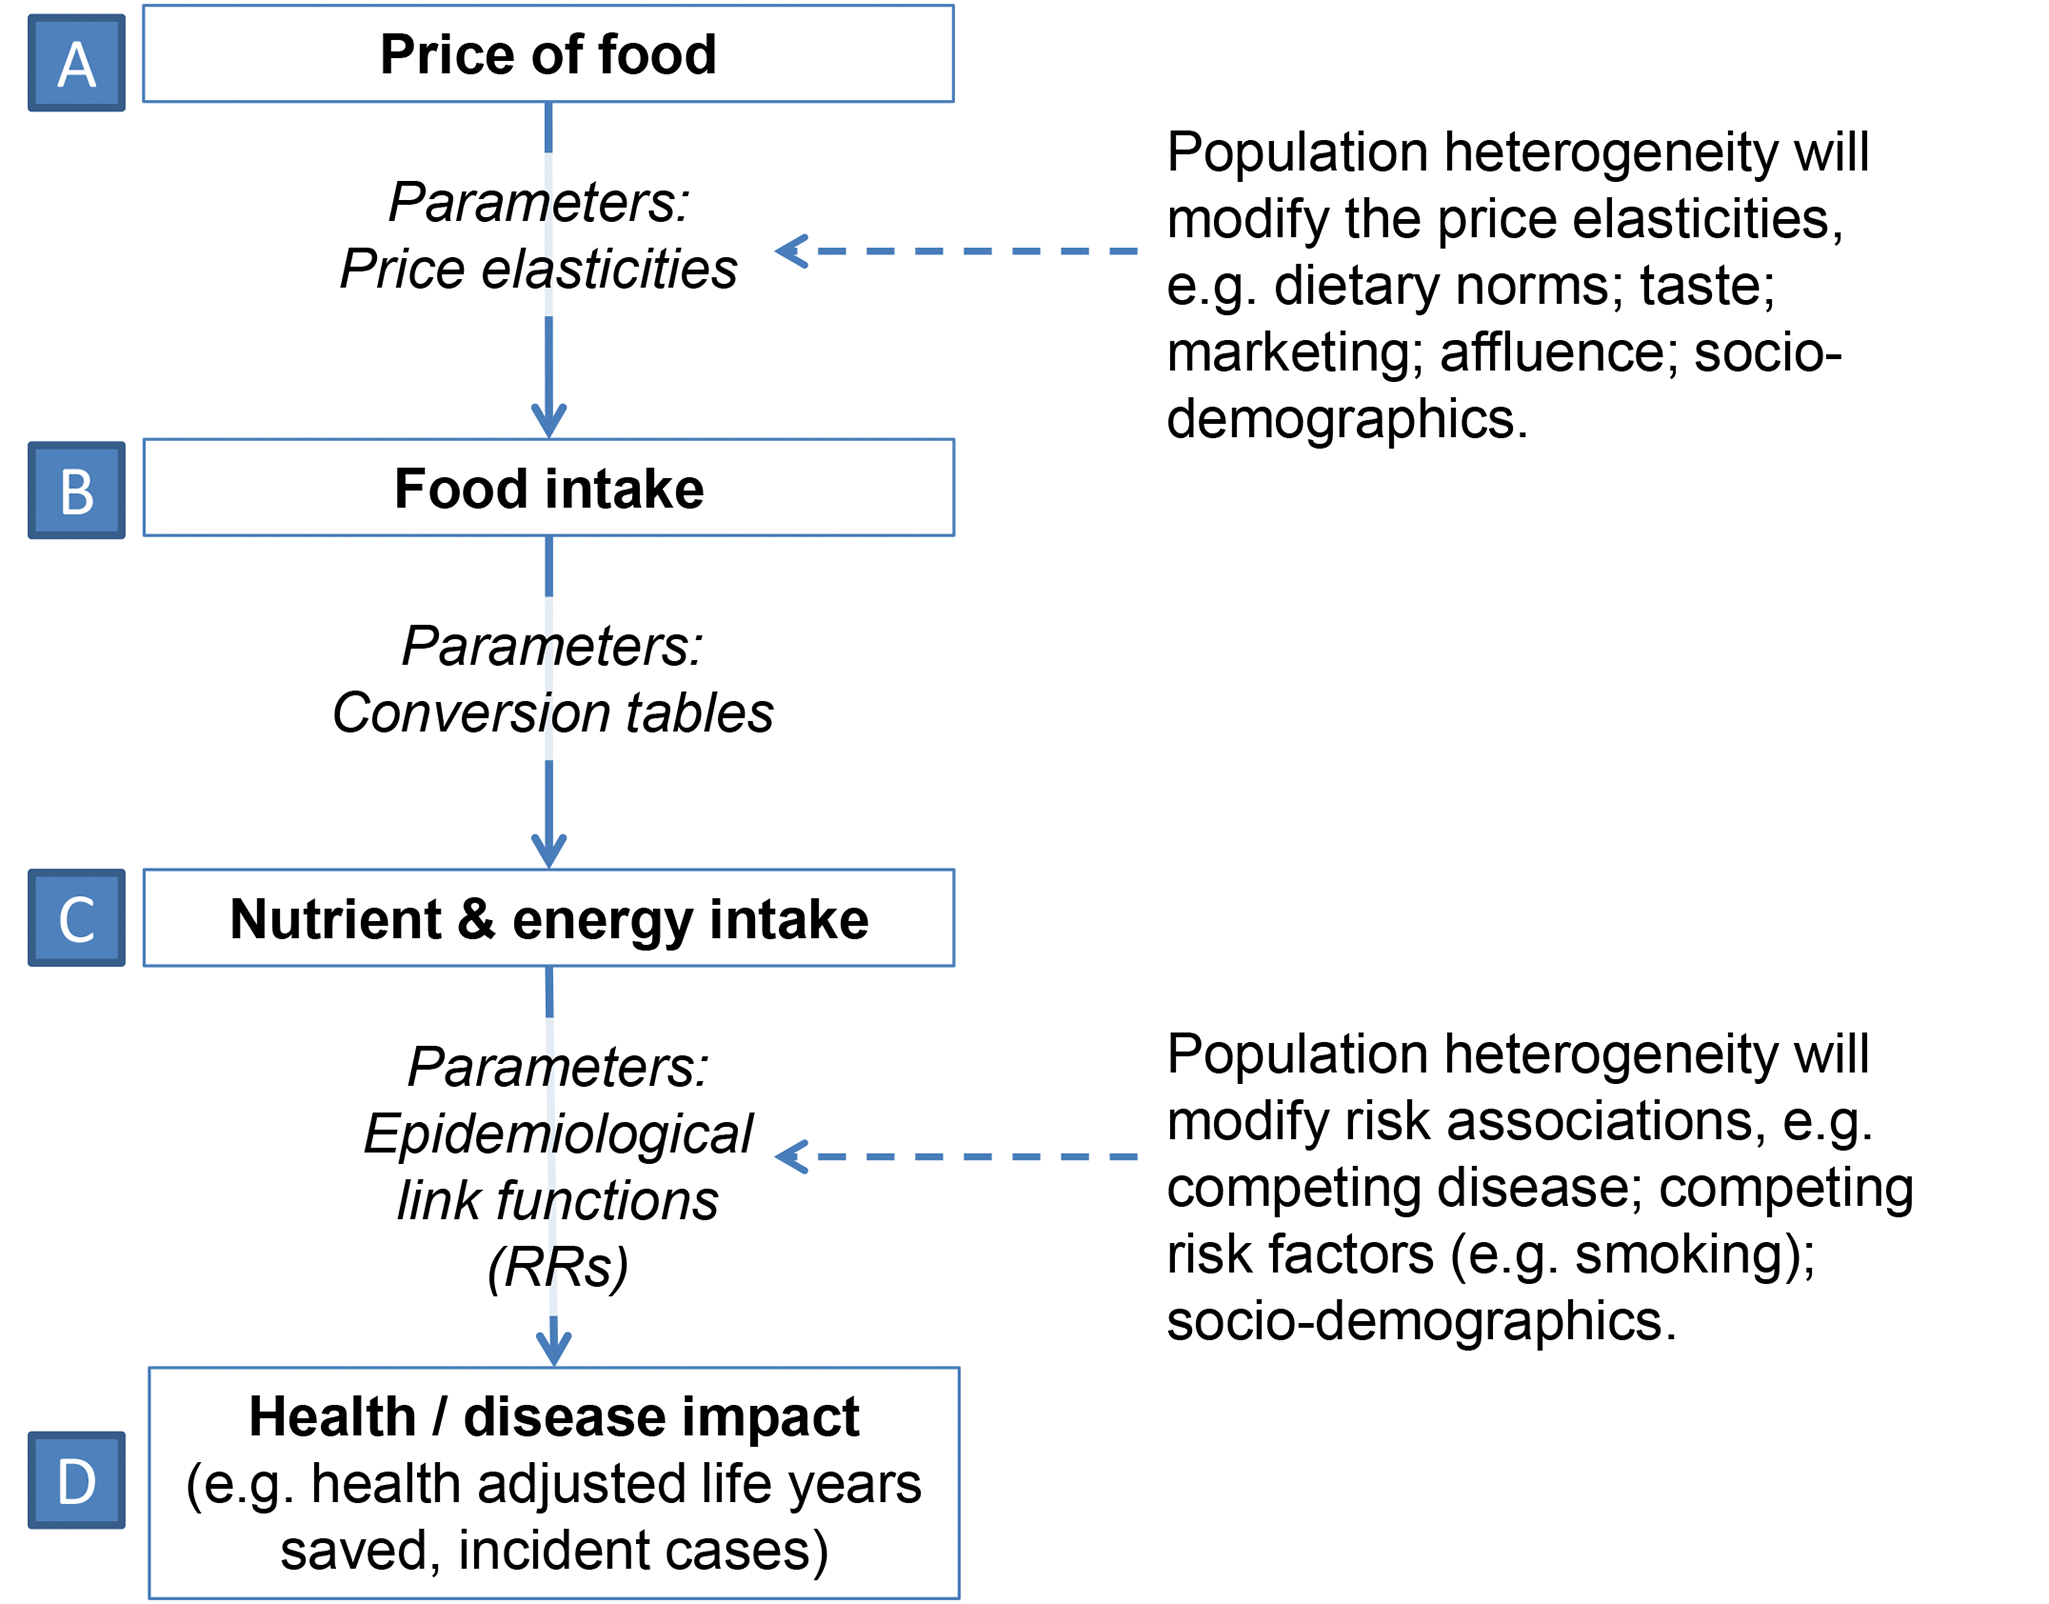 Causal diagram for simulation model illustrating how food price leads to health or disease impact.